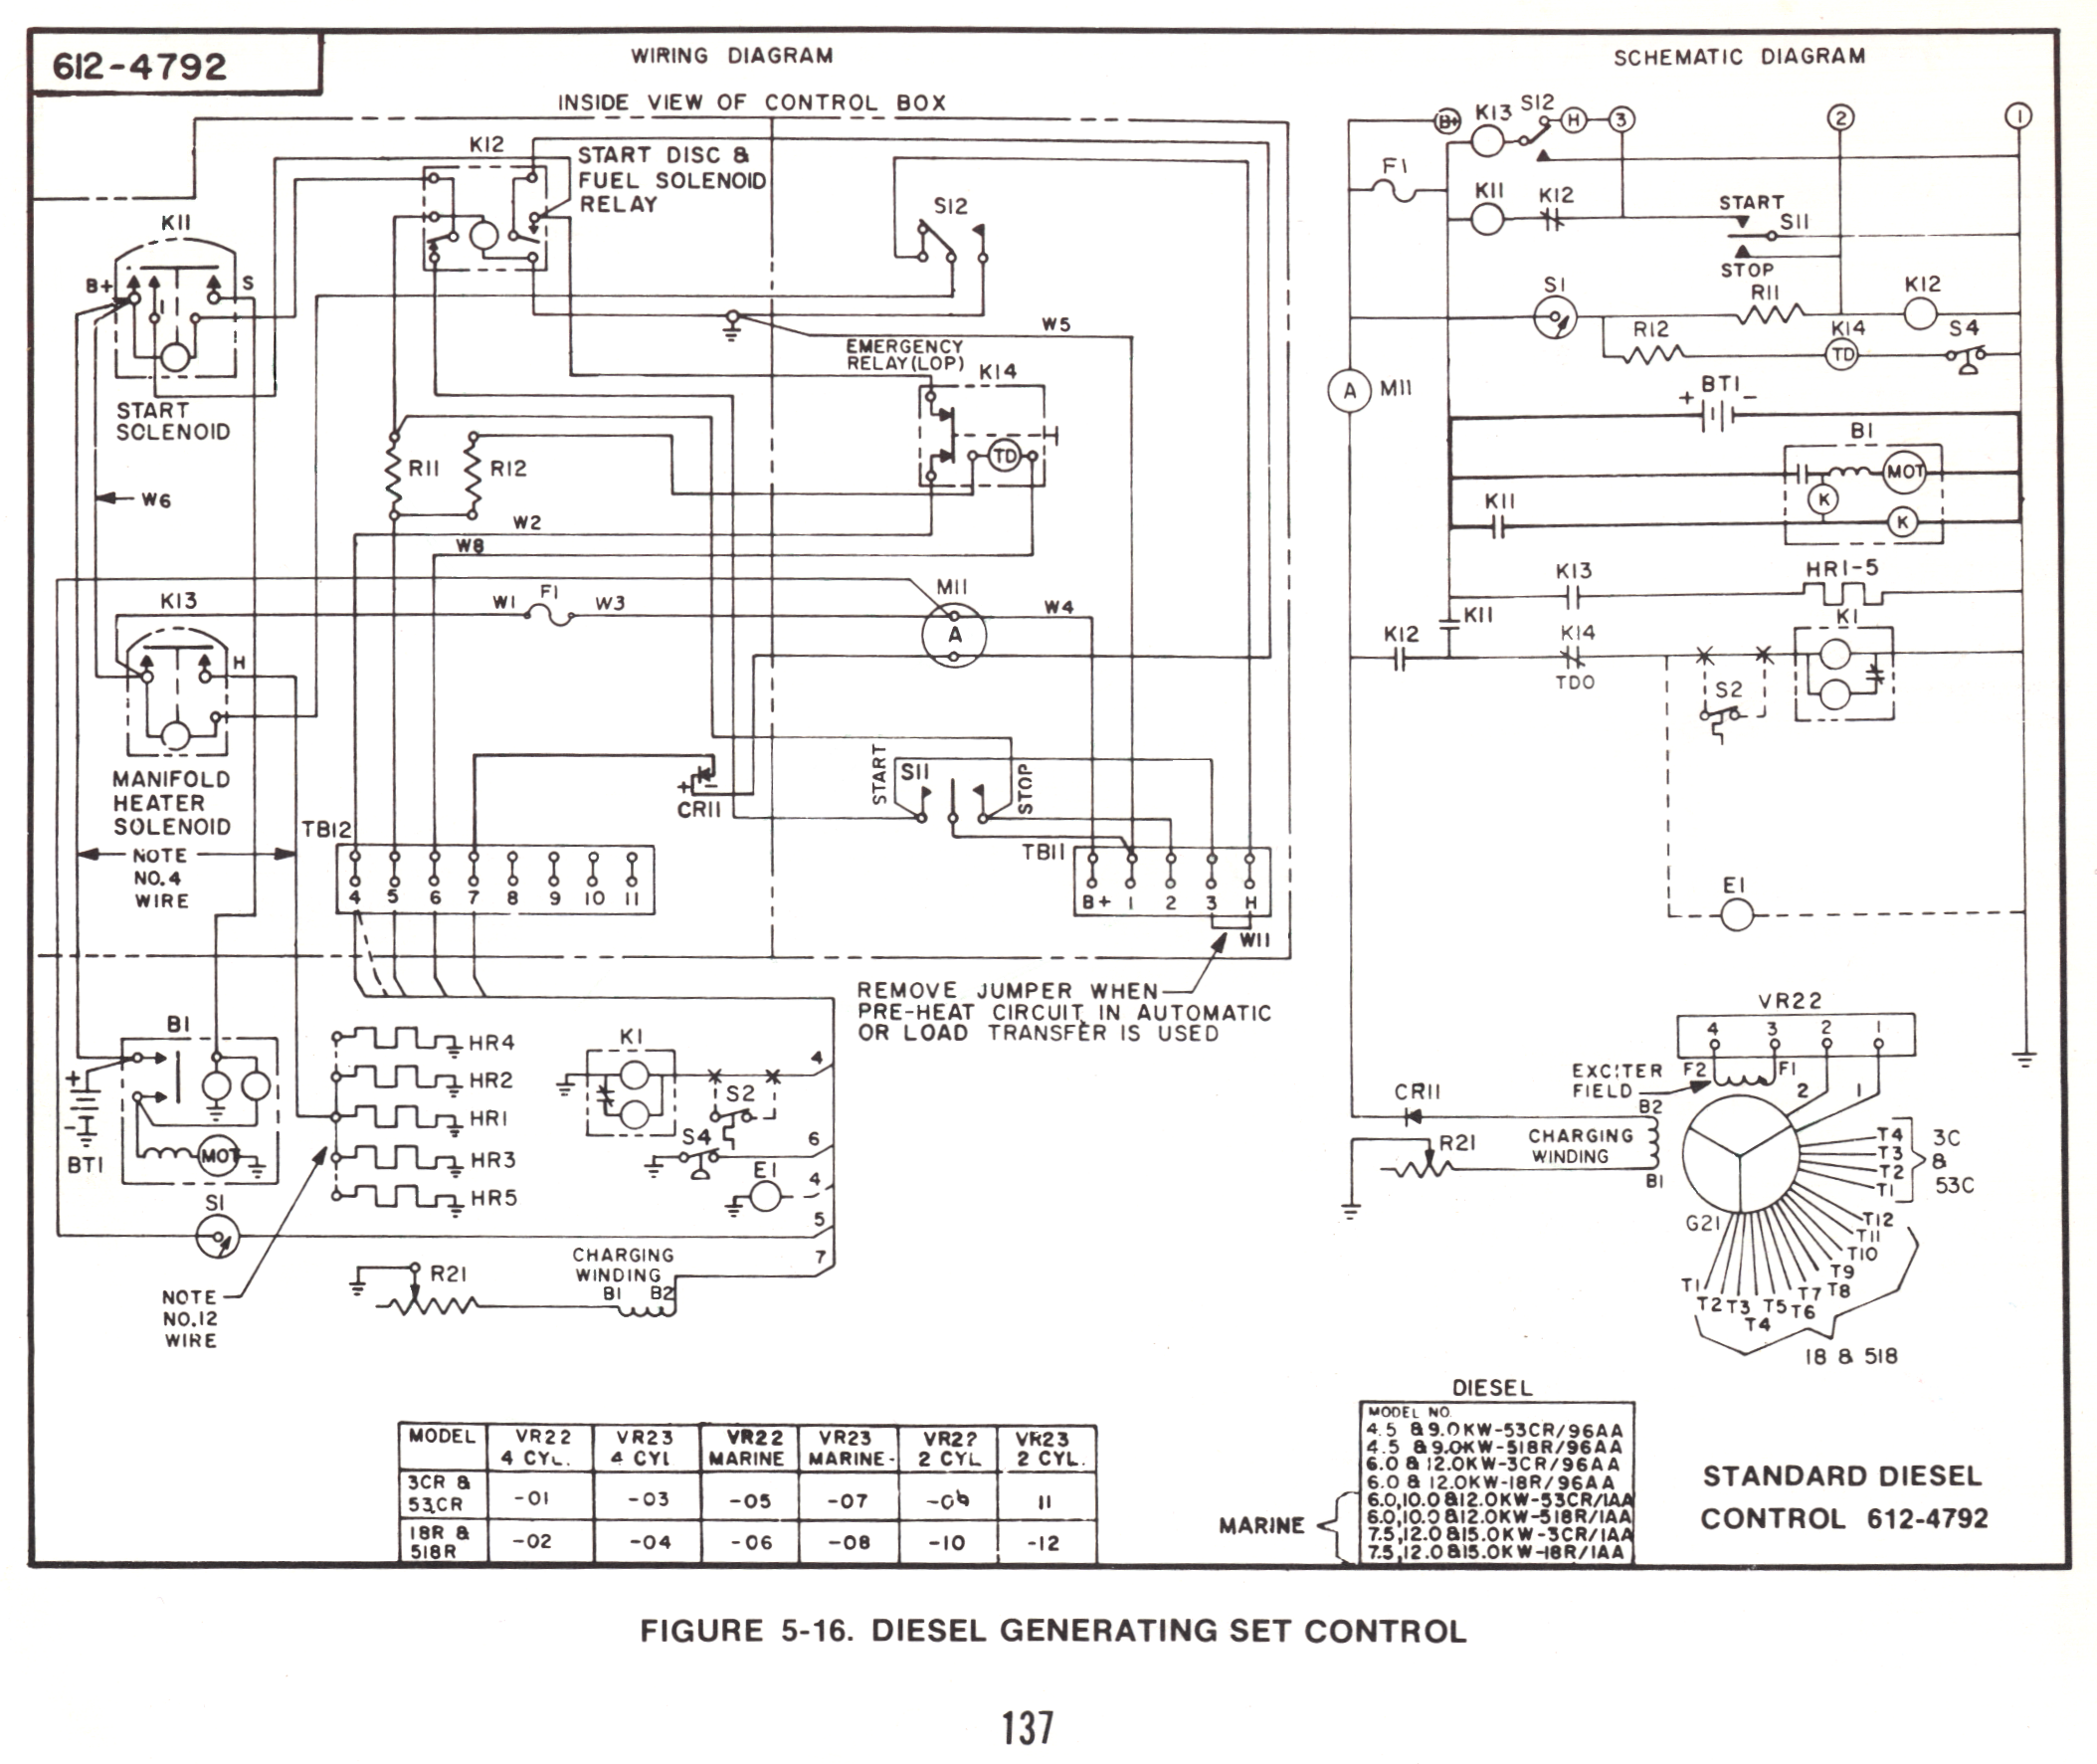 Onan_Diesel_Controls_612 4792_b onan wiring diagram onan wiring diagram 611 1127 \u2022 wiring diagrams onan 5500 marquis gold generator wiring diagram at creativeand.co